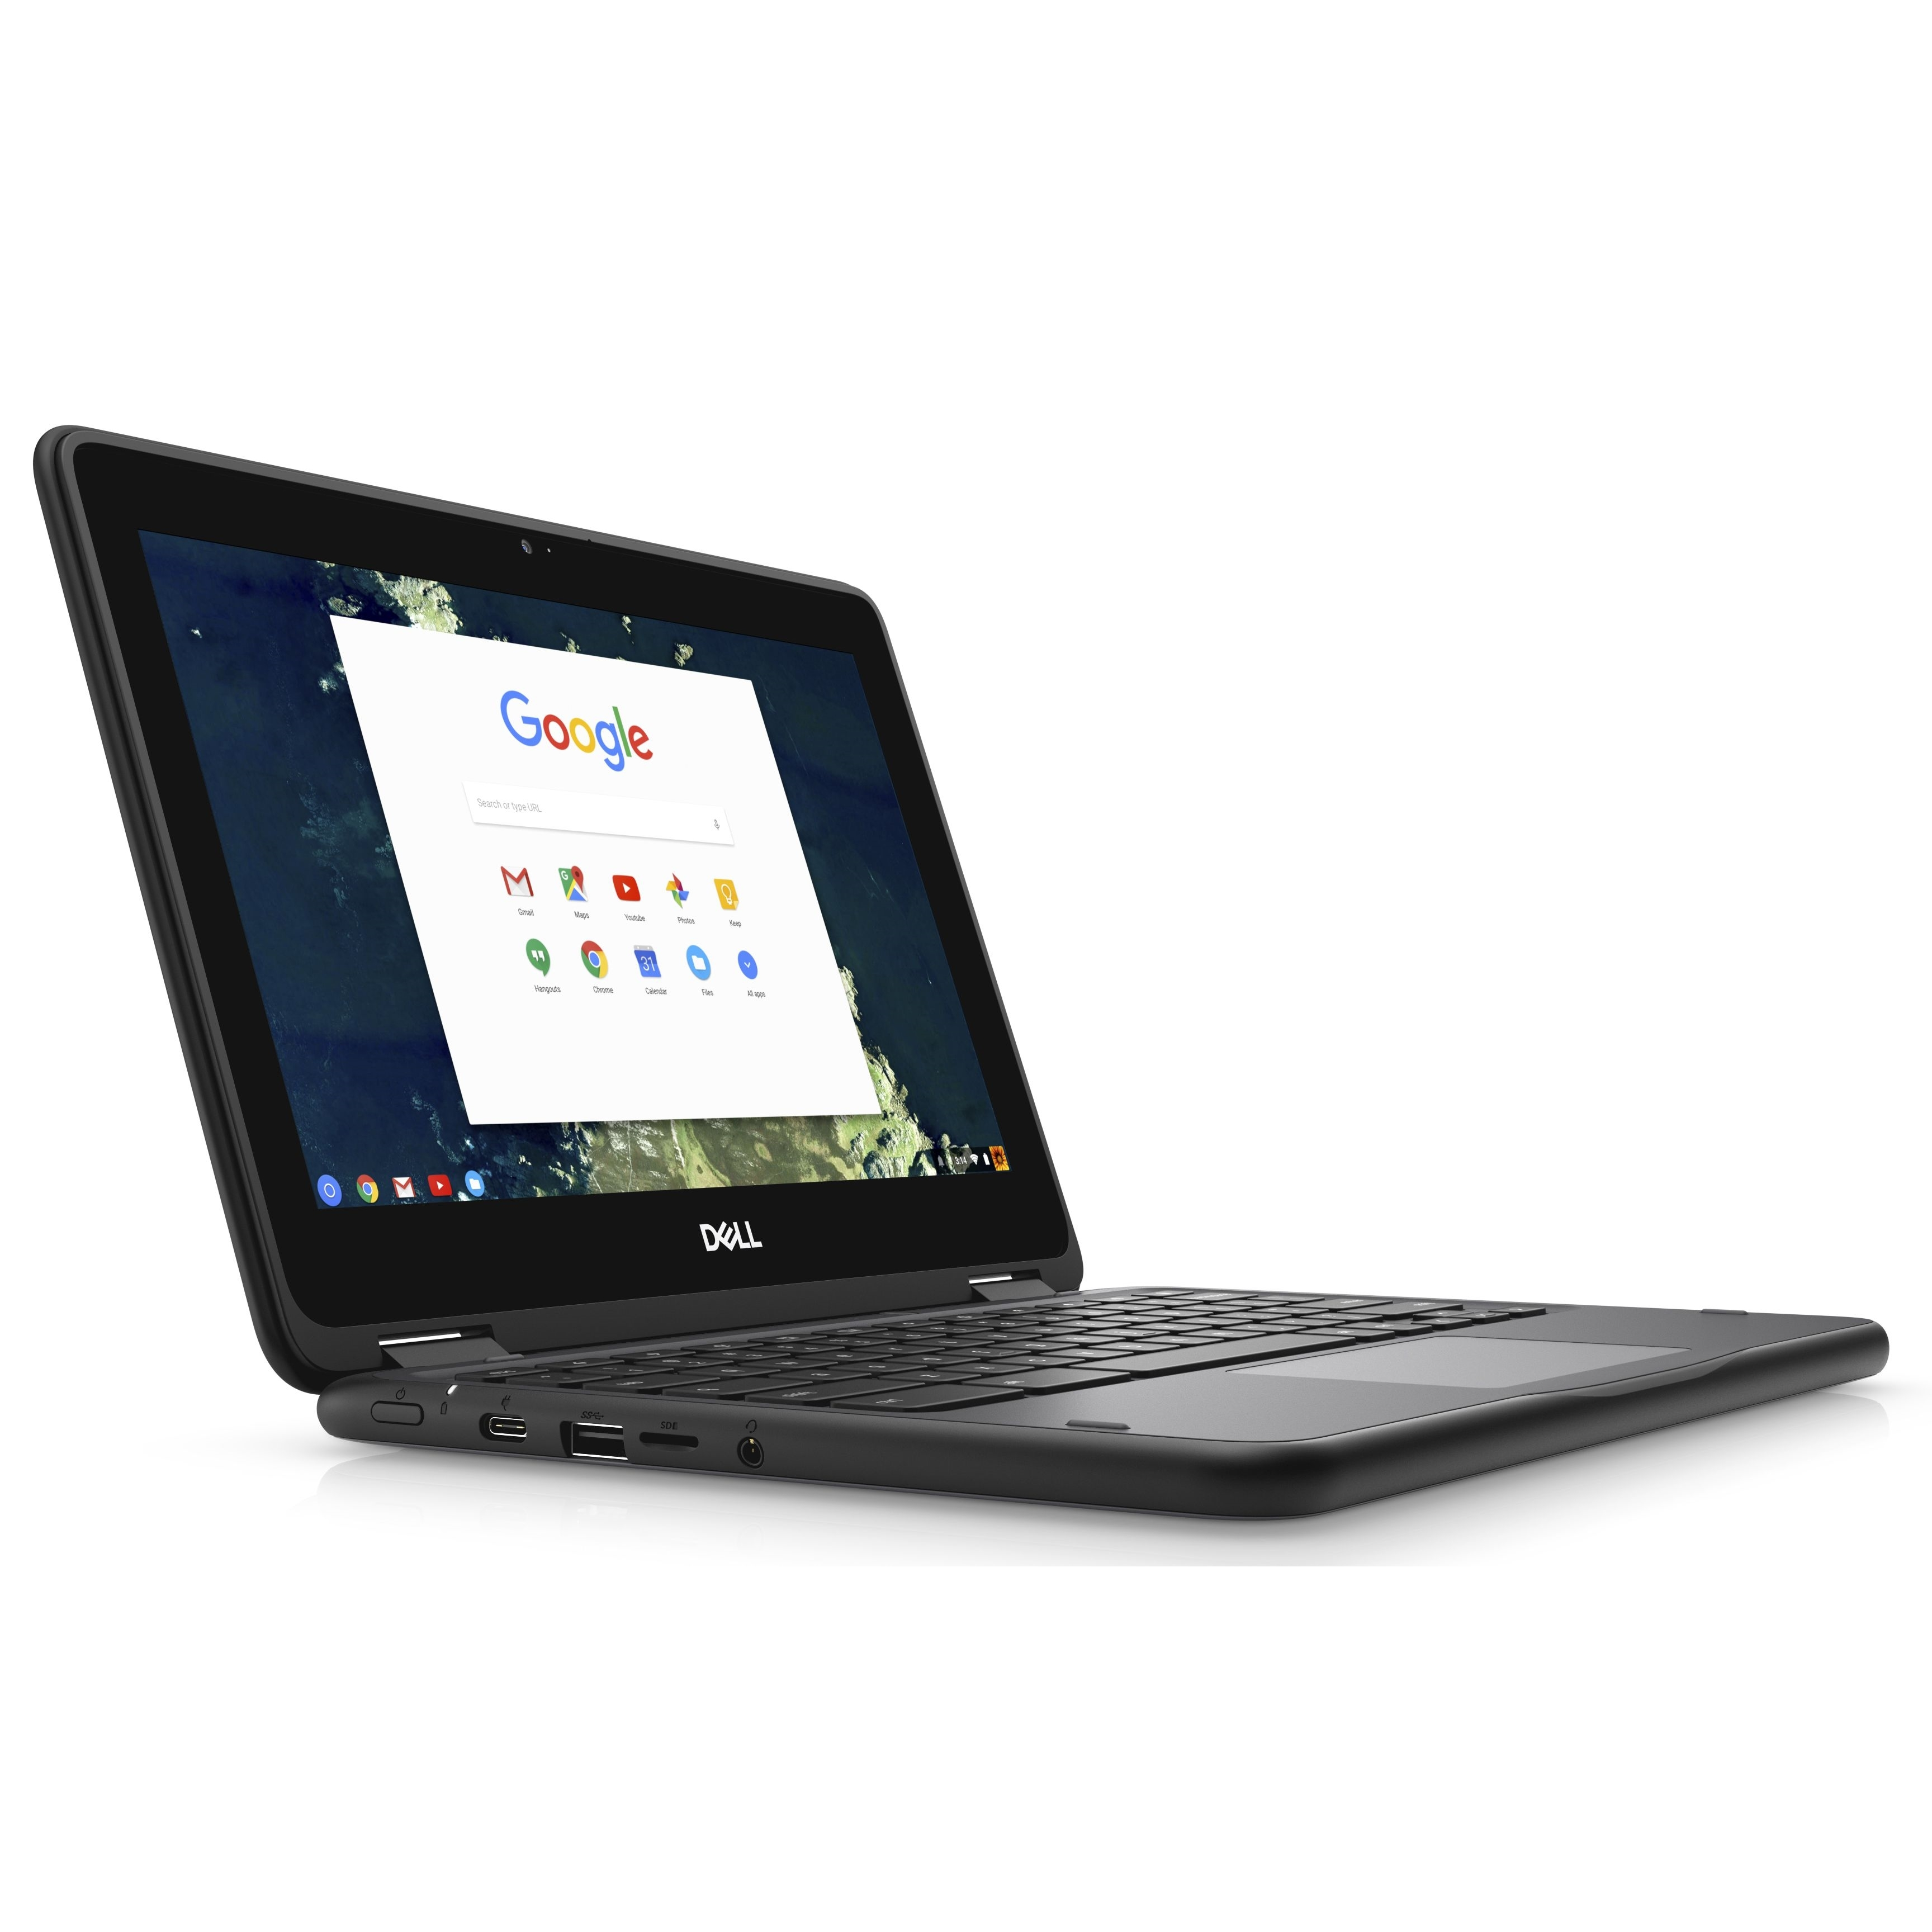 "Dell Chromebook 11 5190 Intel Celeron N3350 X2 1.1GHz 4GB 16GB 11.6"", Black (Scratch And Dent Refurbished)"